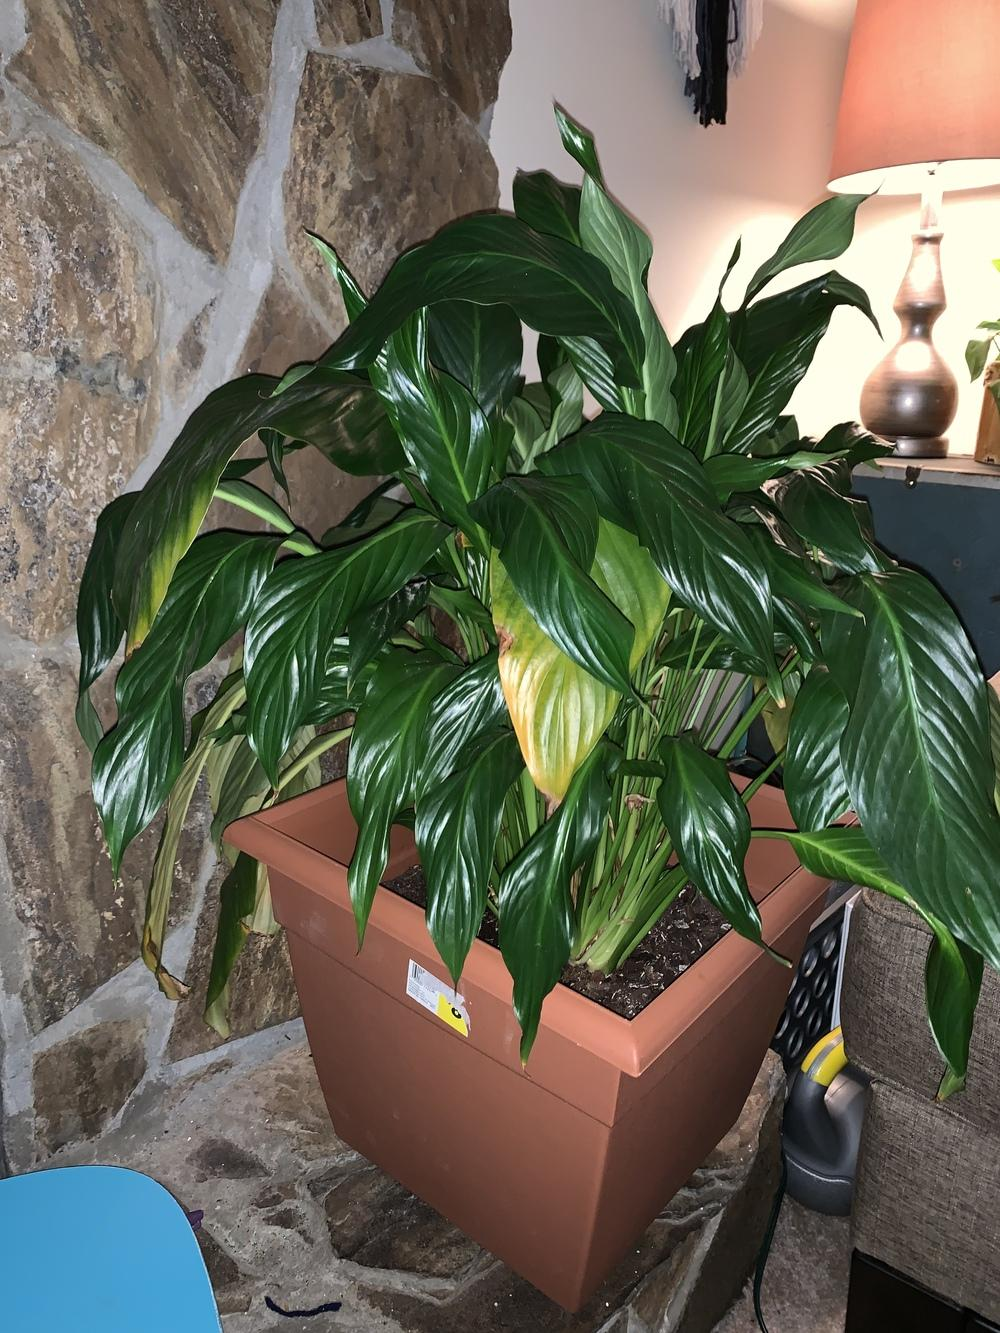 Houseplants forum: Wilting peace lily. - Garden.org on wilted rose plant, wilted ivy plant, wilted boston fern plant, wilted daisy plant, wilted pothos plant, wilted poppy plant, wilted aloe vera plant,